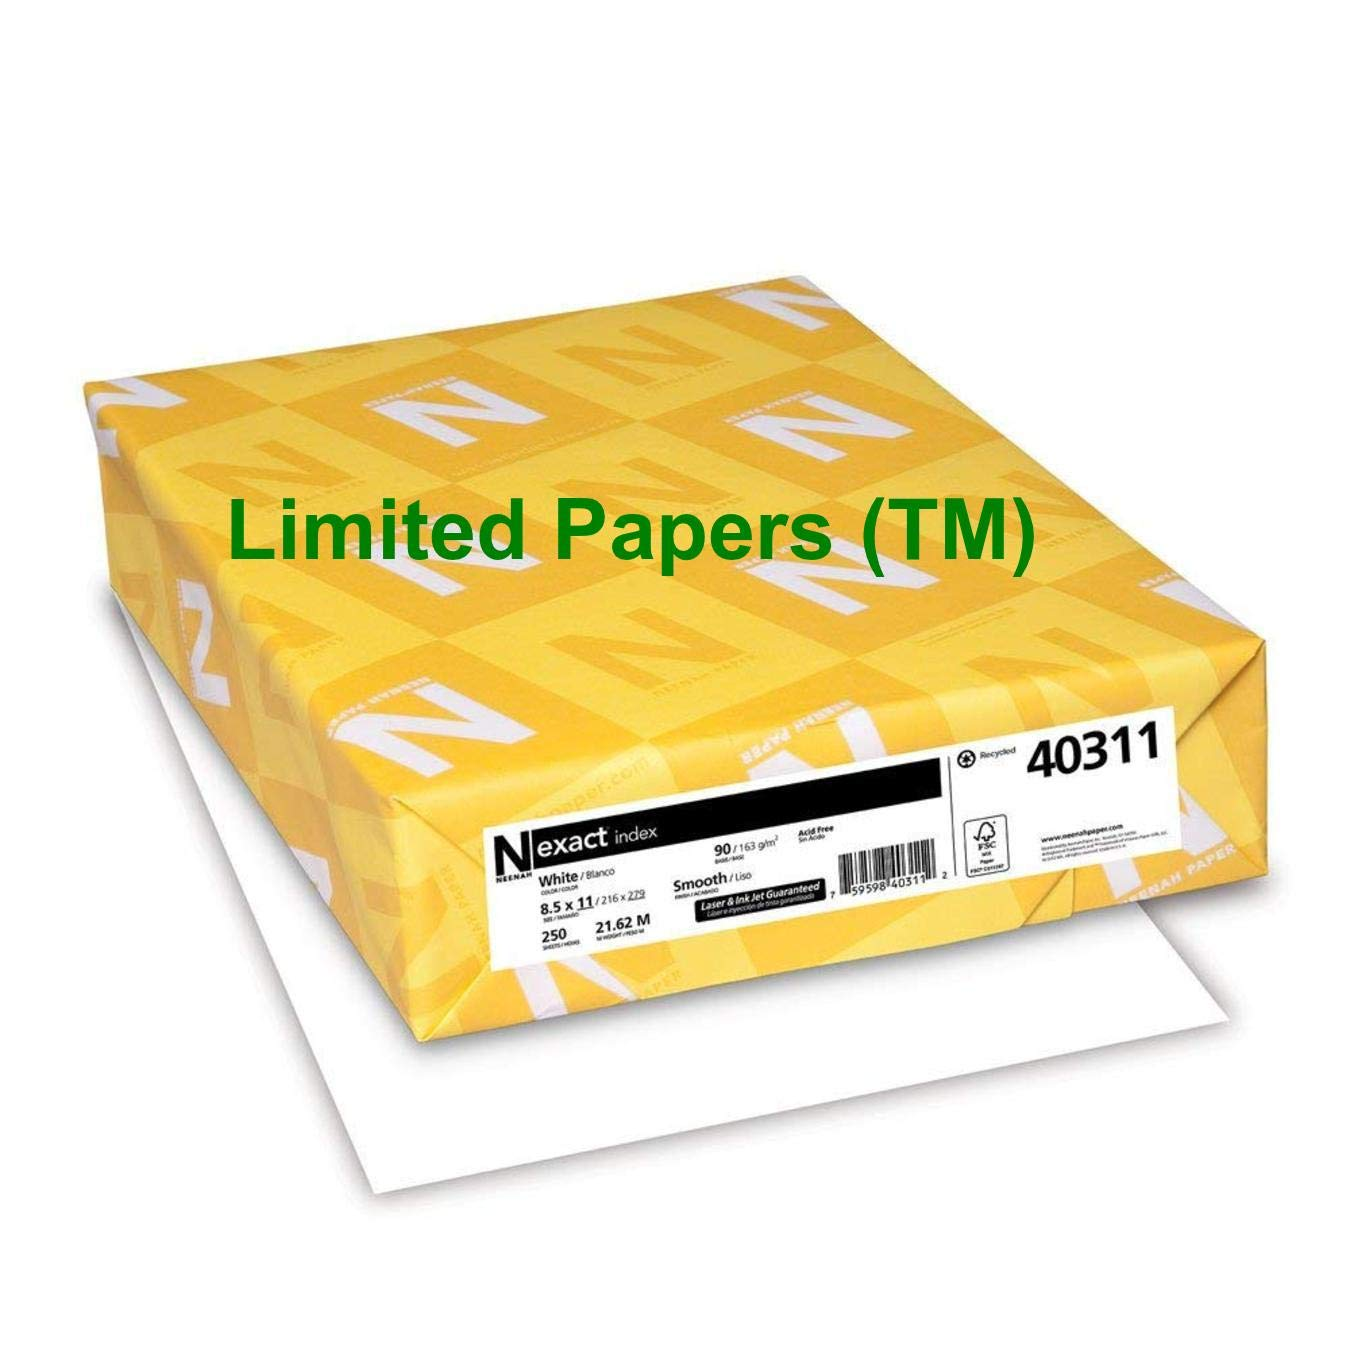 Limited Papers (TM) Exact Index Cardstock, 94 Brightness, 90 lb /163 gsm, 8.5'' x 11'', White - 40311 (8 pack- case)